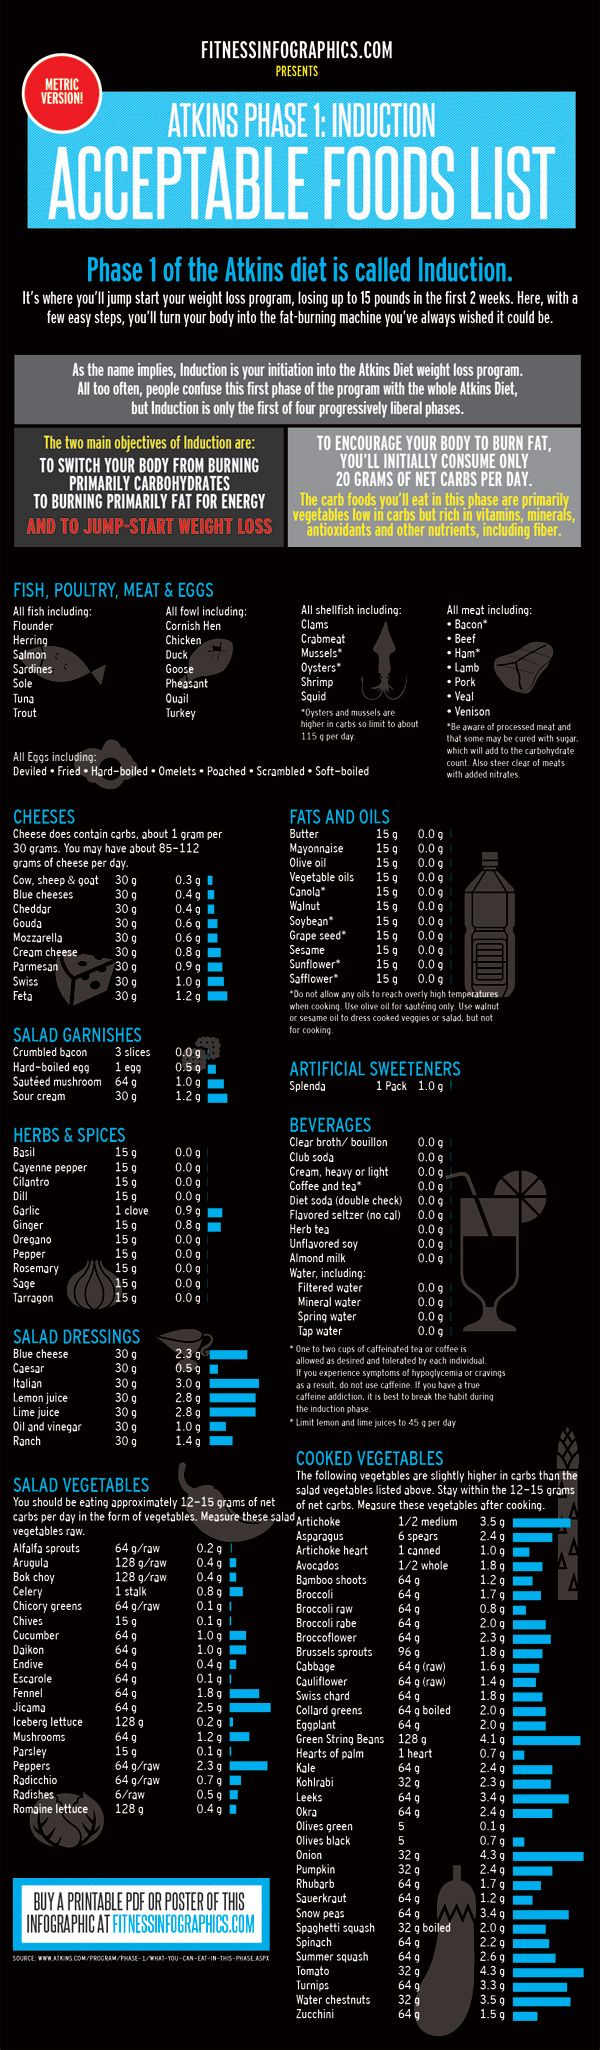 Diets: Atkins Acceptable Foods METRIC VERSION - Fitness Infographics